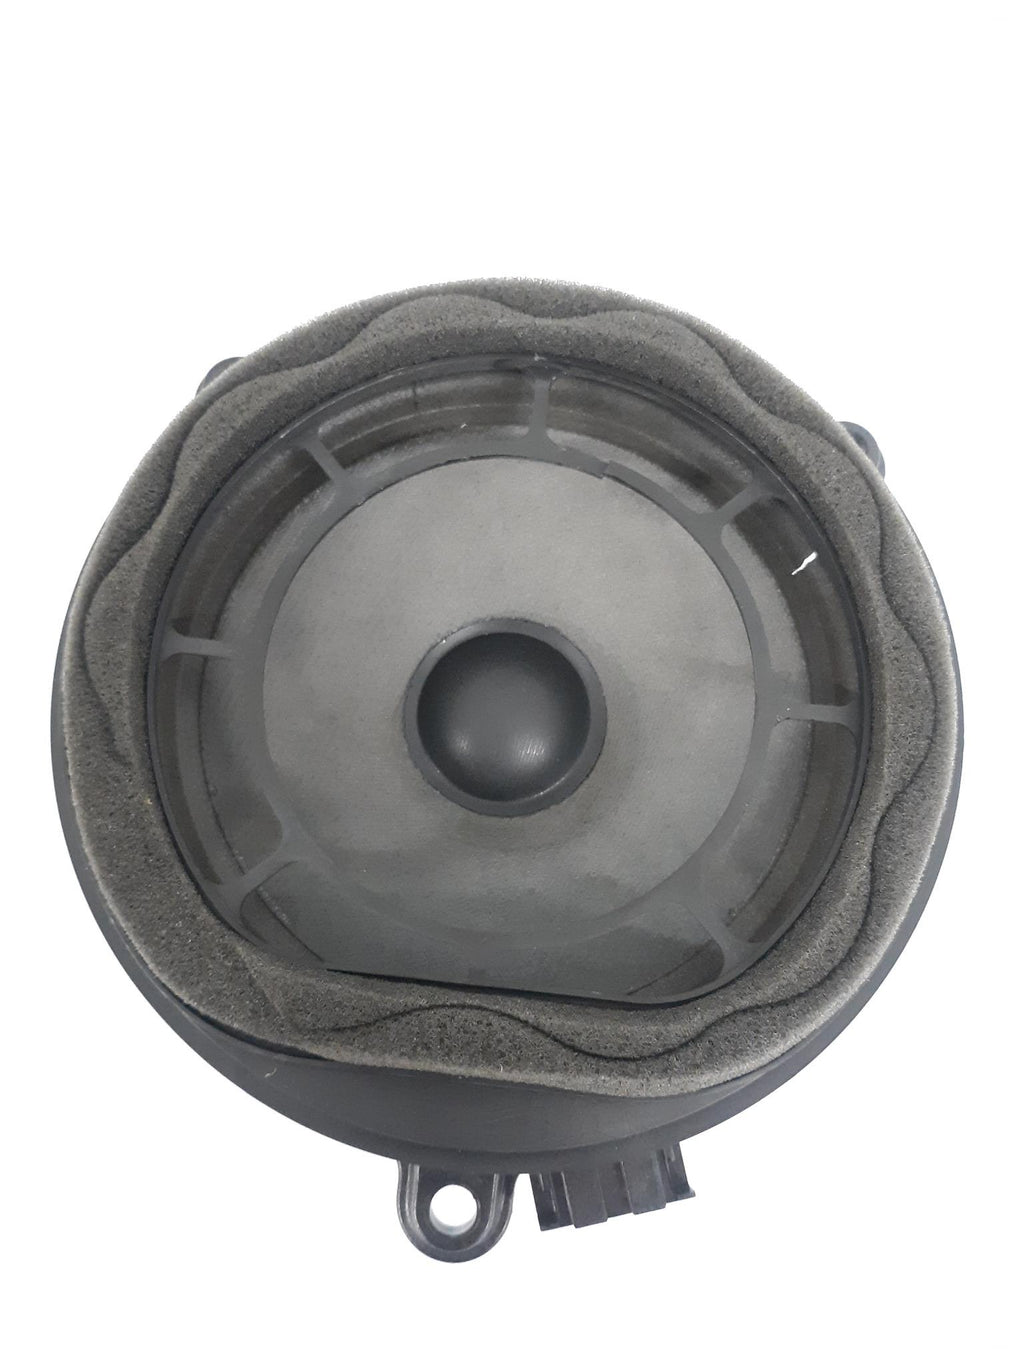 01 - 07 MERCEDES-BENZ W203 C230 C240 C320 C280 REAR LEFT DRIVER DOOR SPEAKER - Click Receive Auto Parts